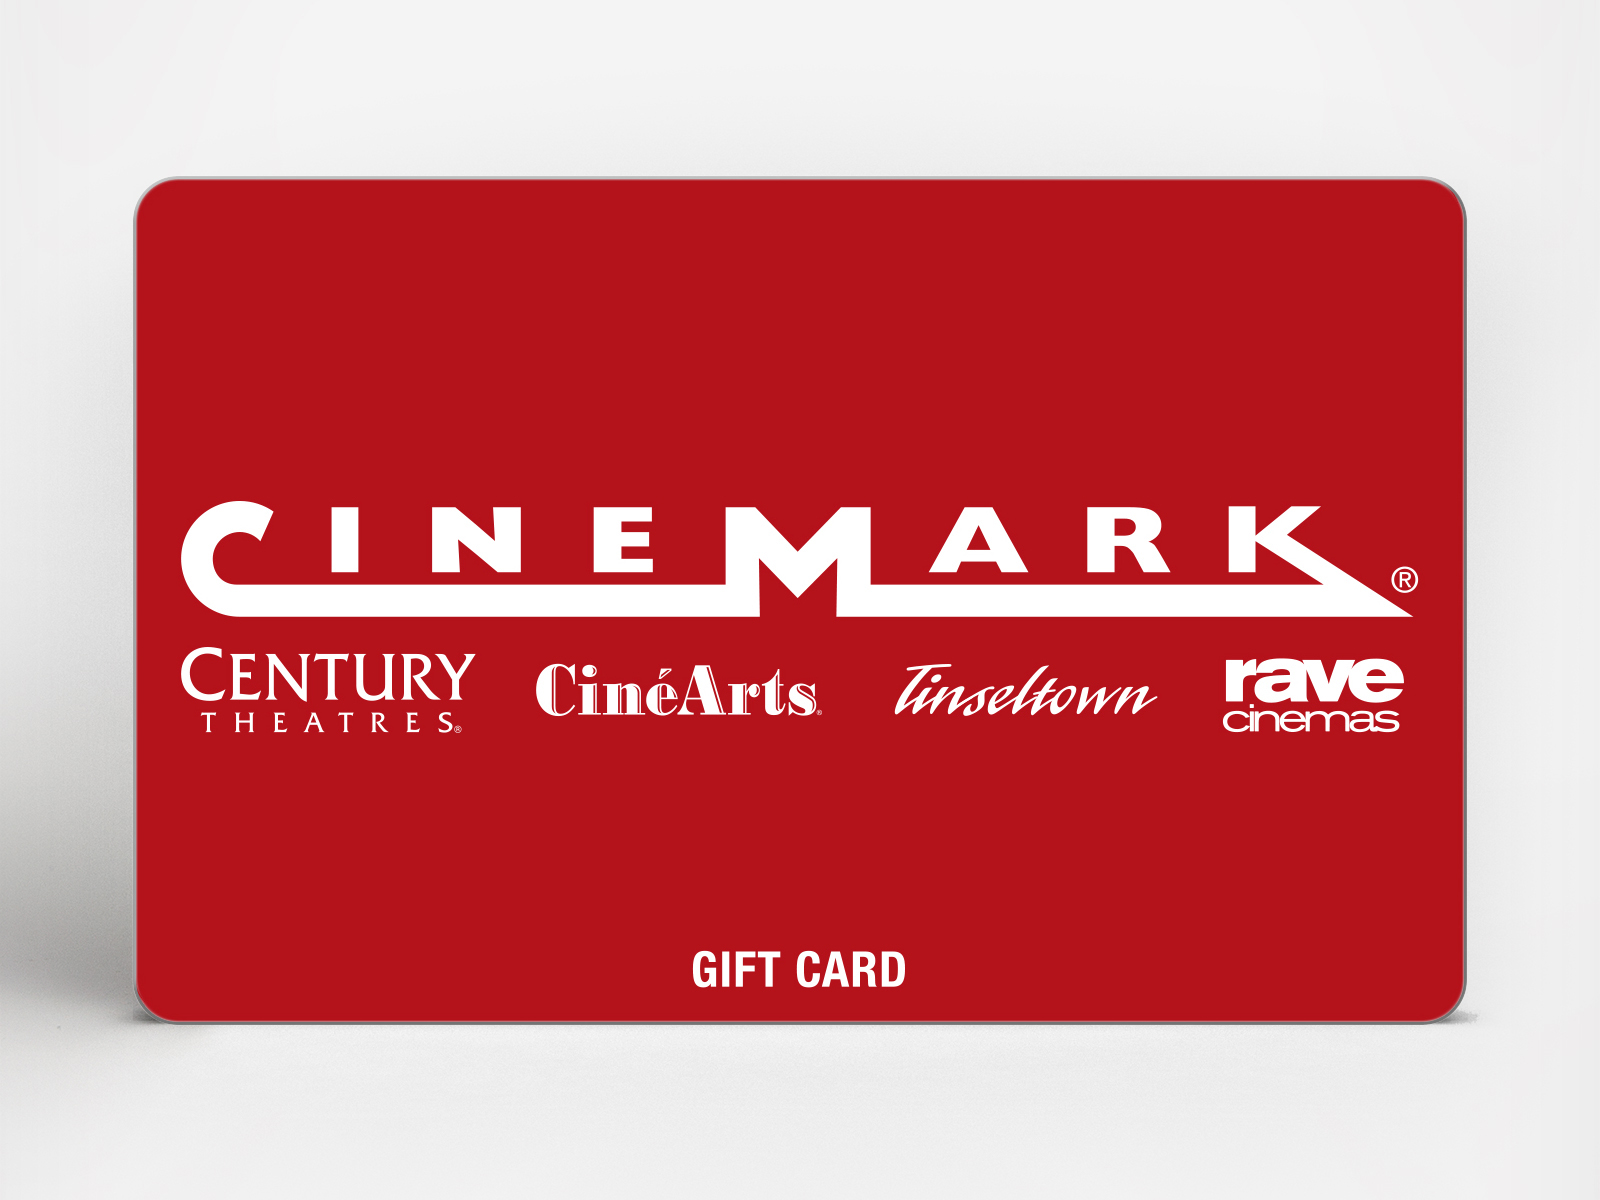 Cinemark on Zola Wedding Registry